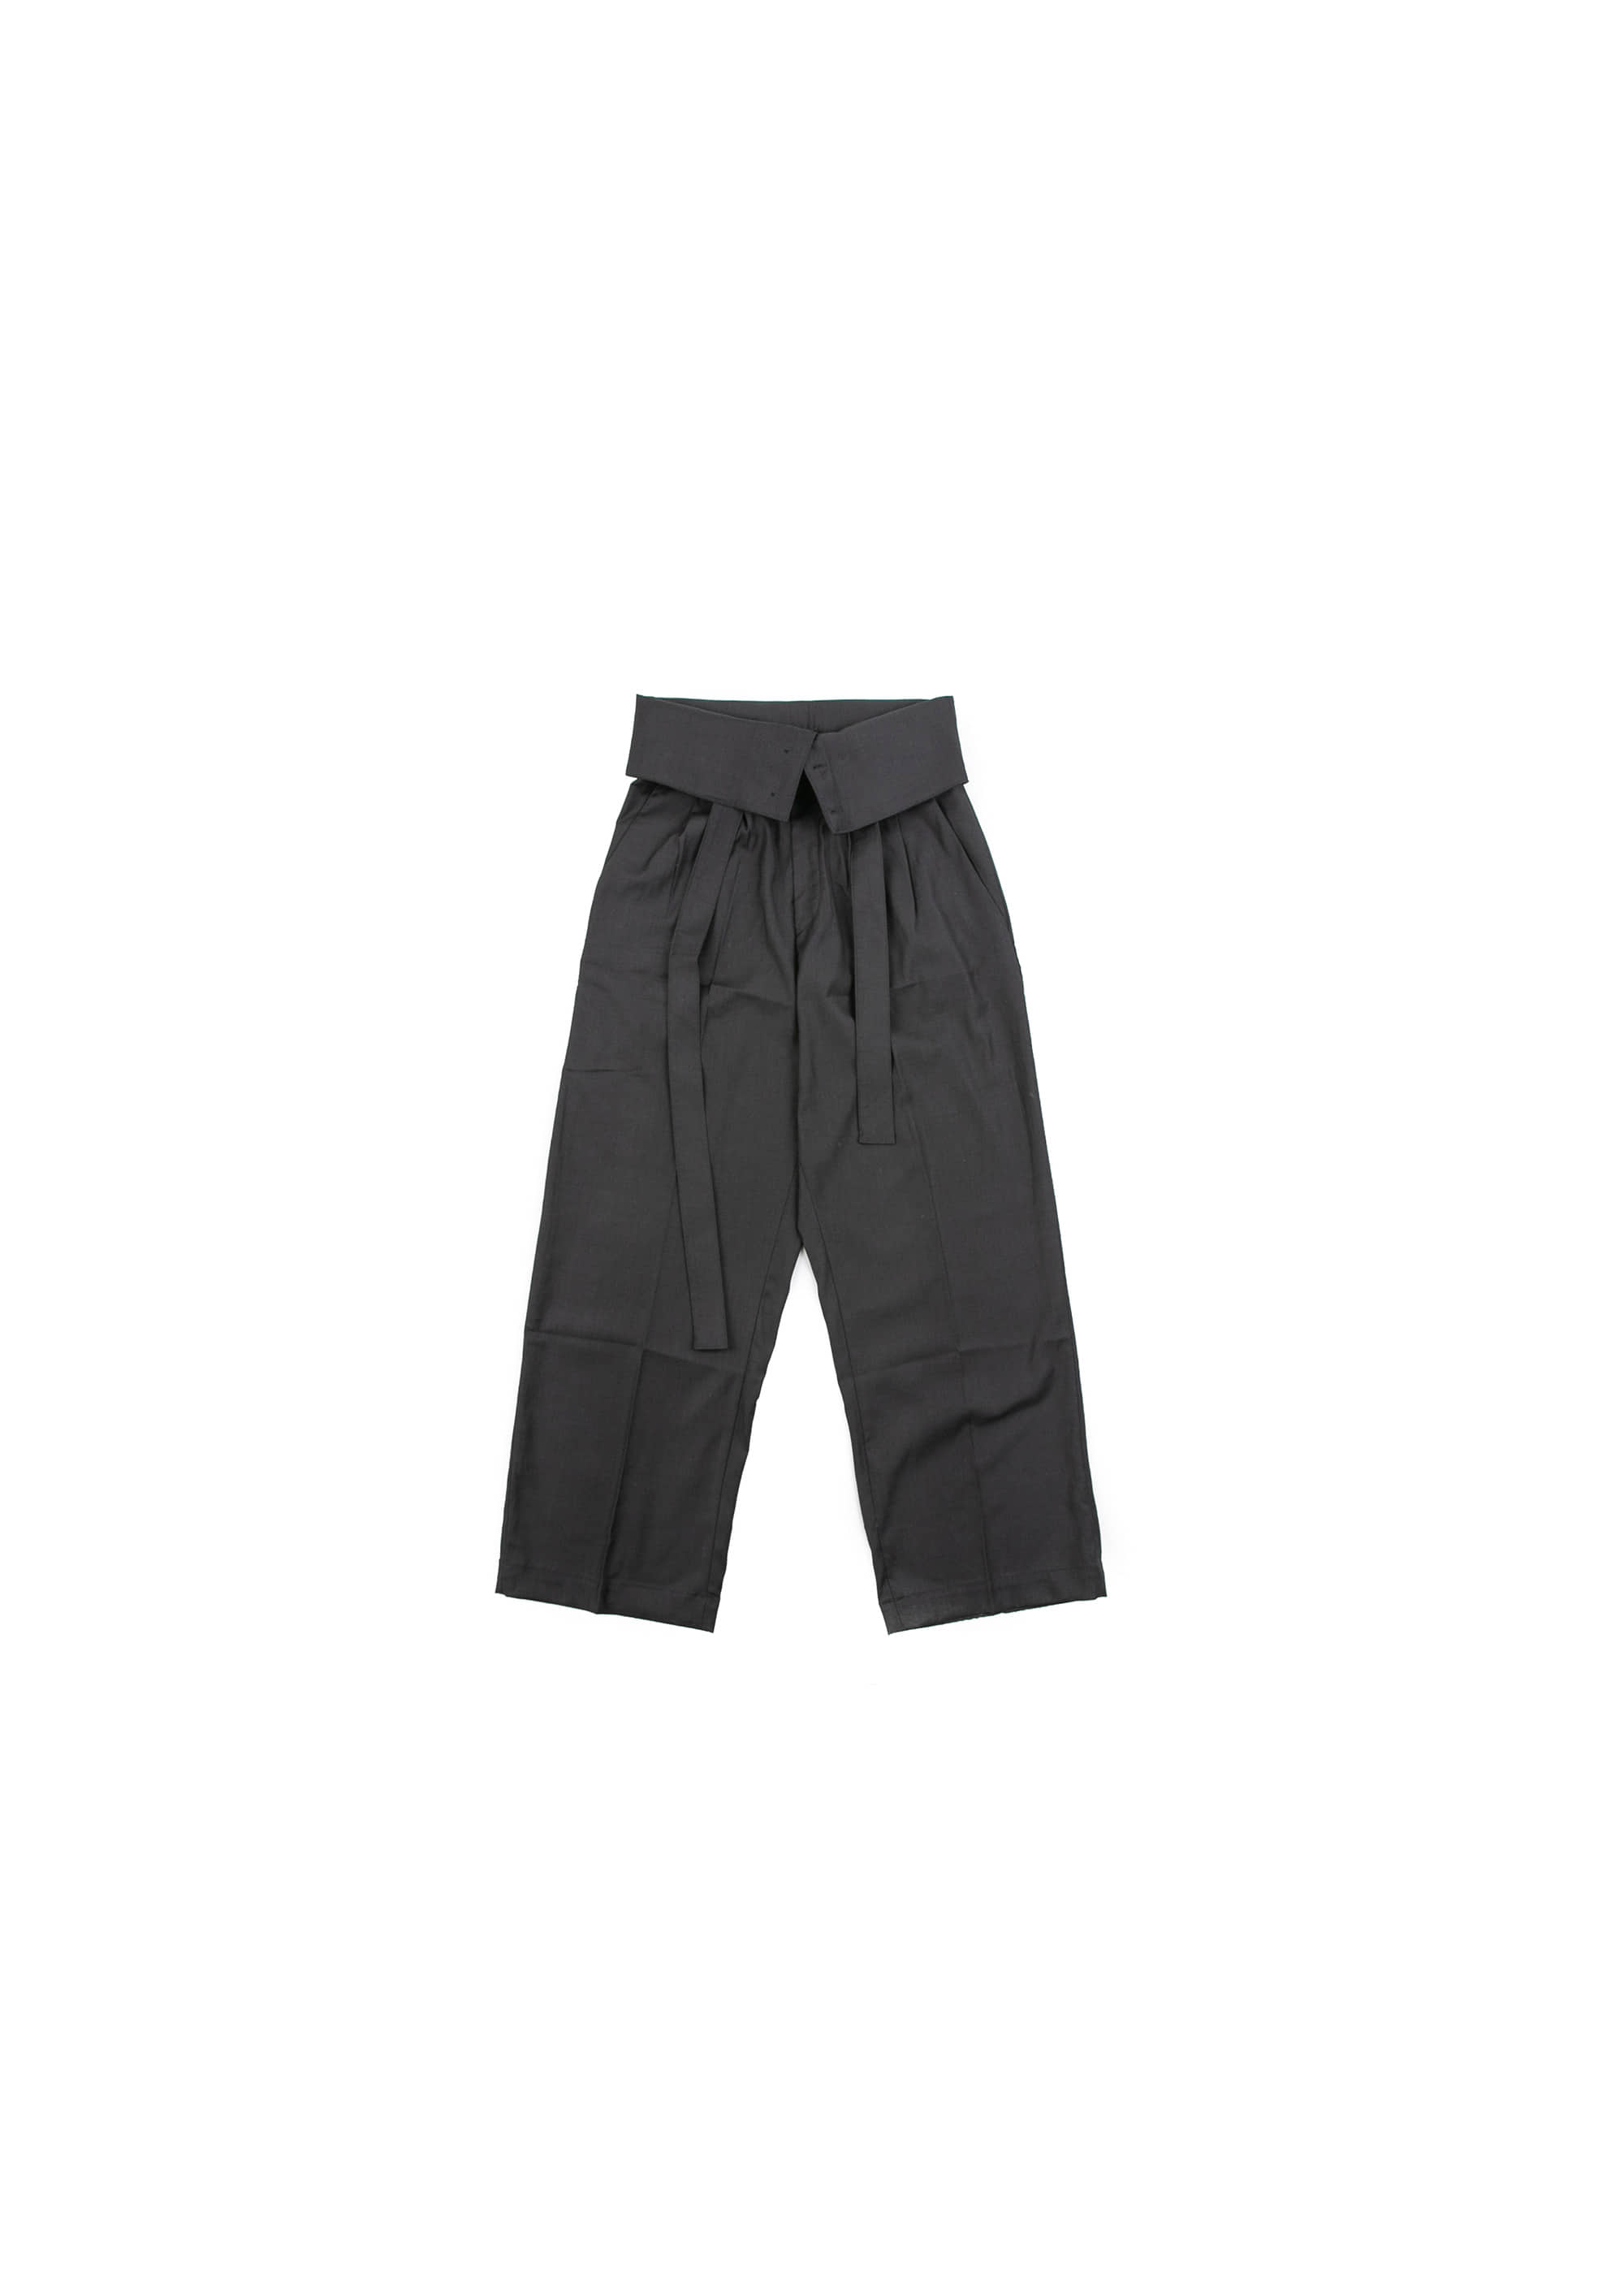 Over Fold Wide Slacks - Grey